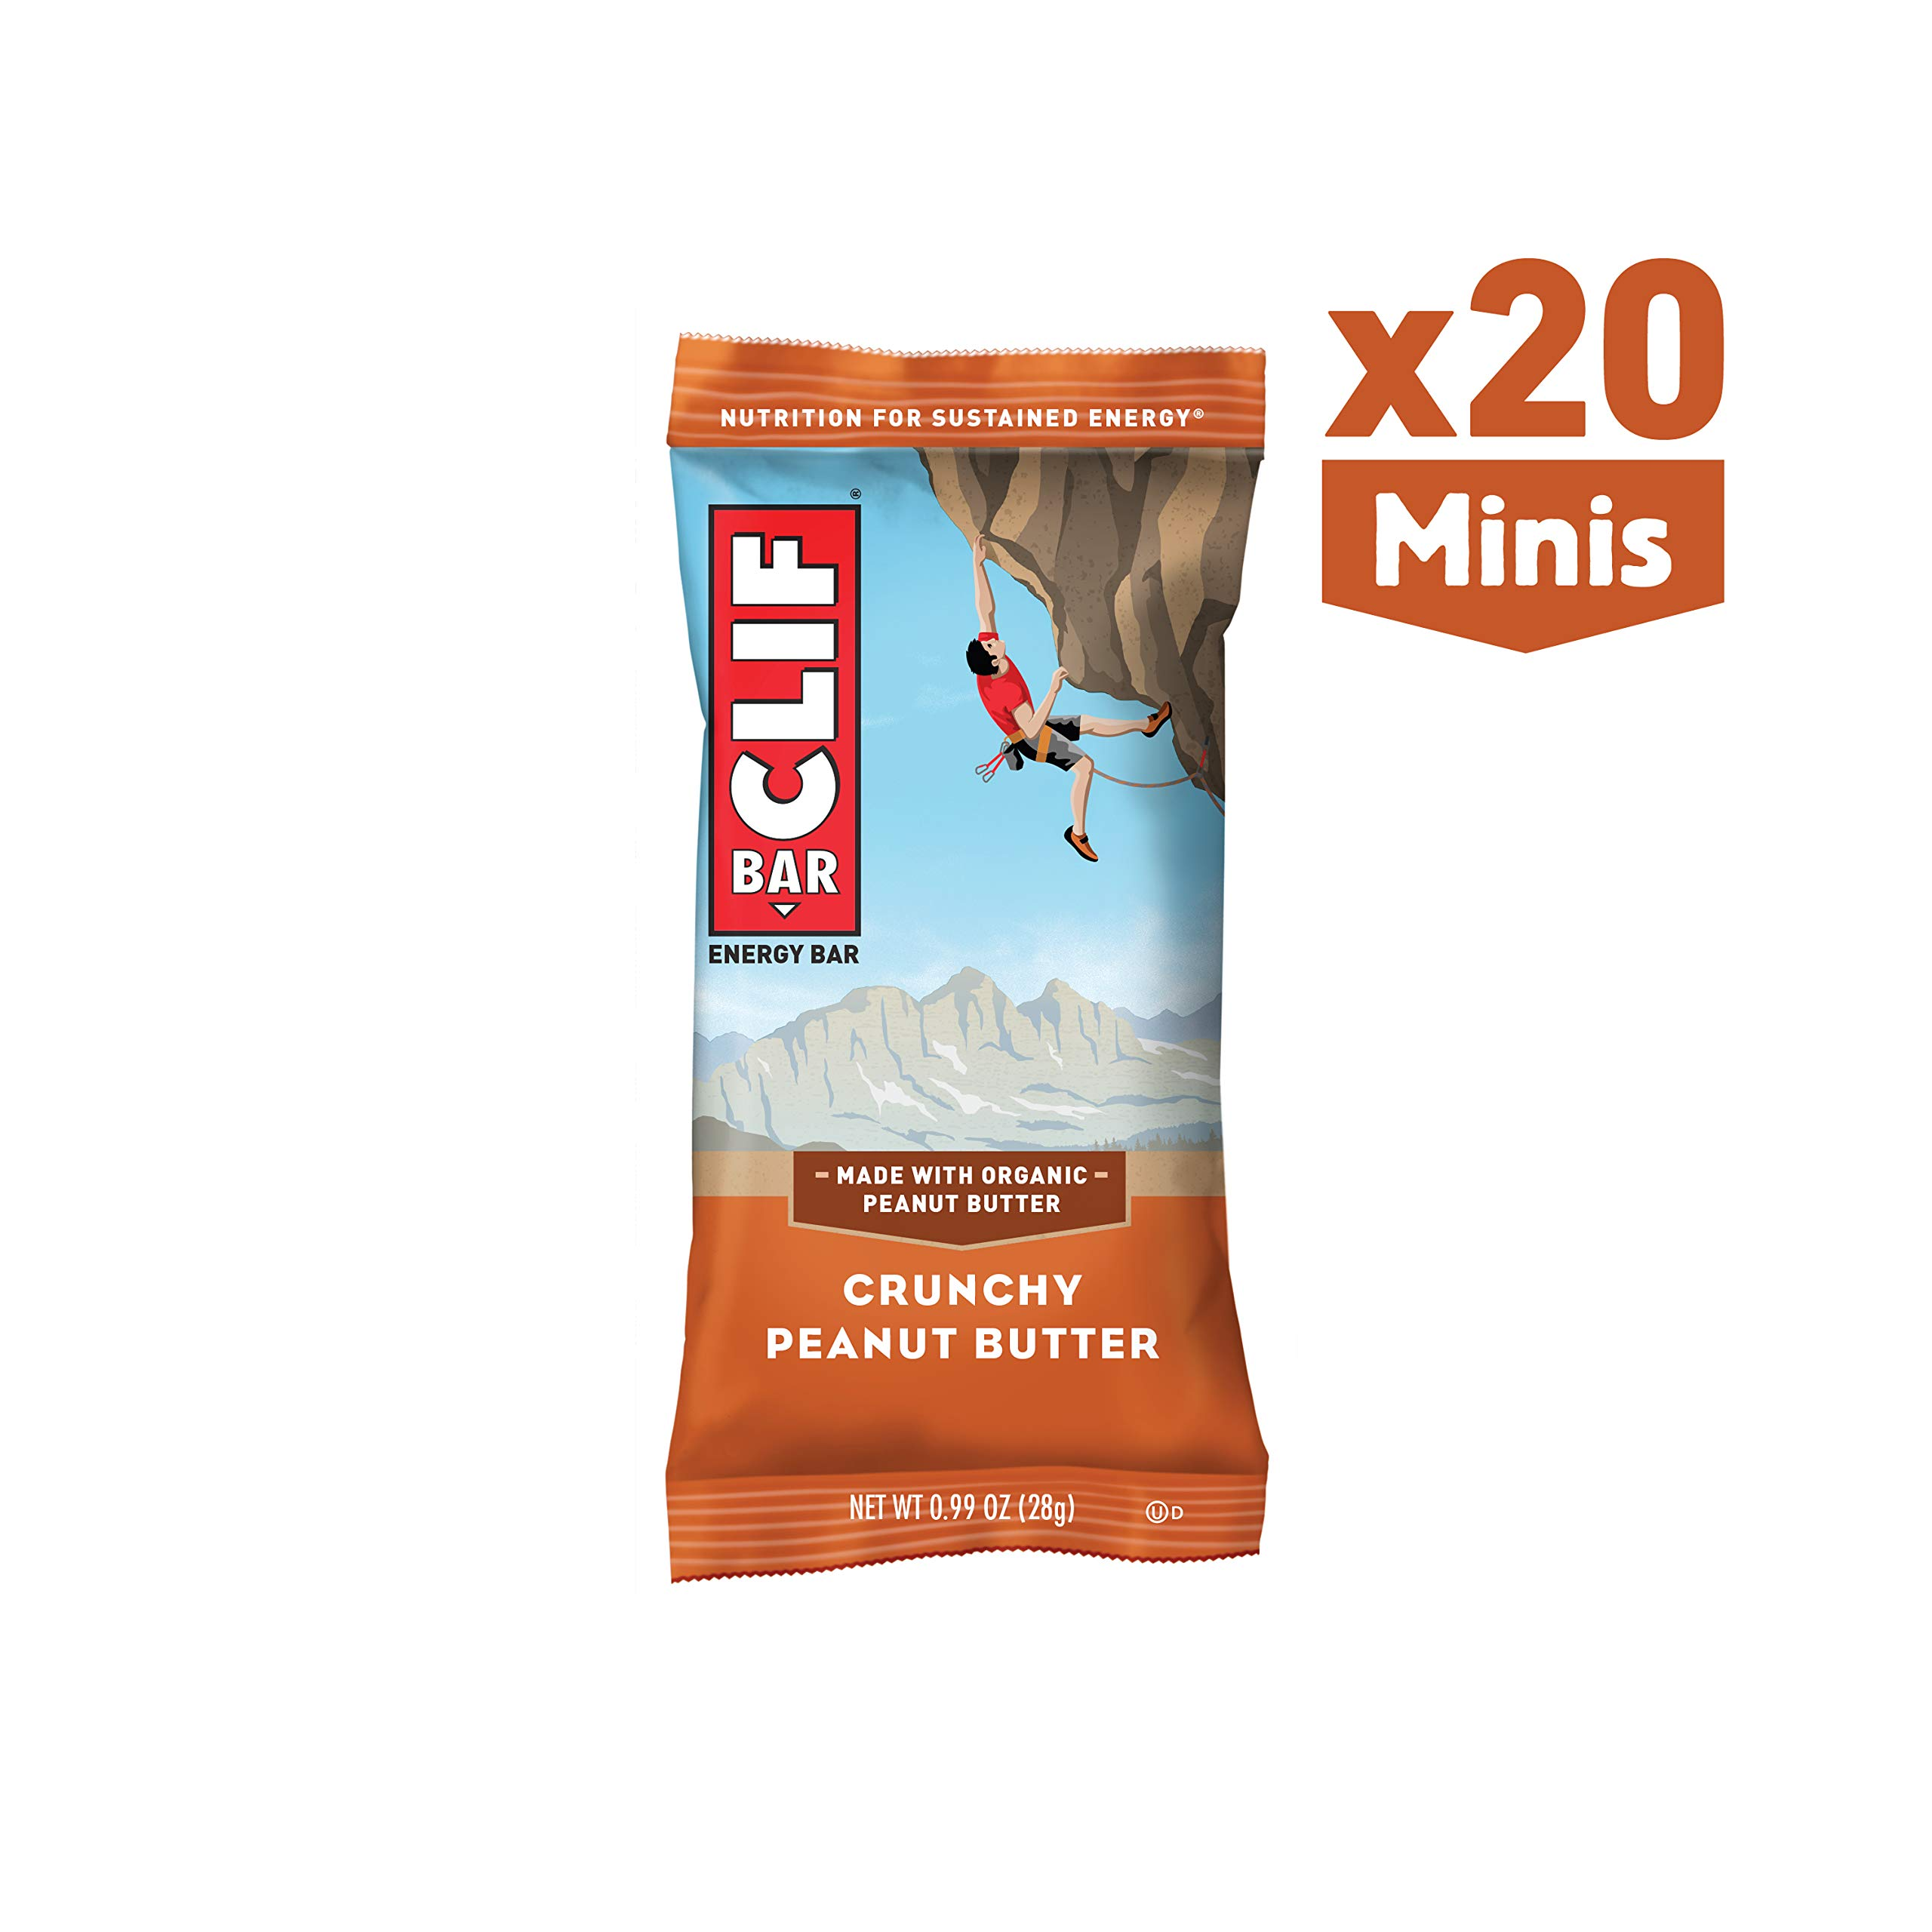 CLIF BAR - Mini Energy Bar - Crunchy Peanut Butter - (0.99 Ounce Snack Bar, 20 Count) by Clif Bar